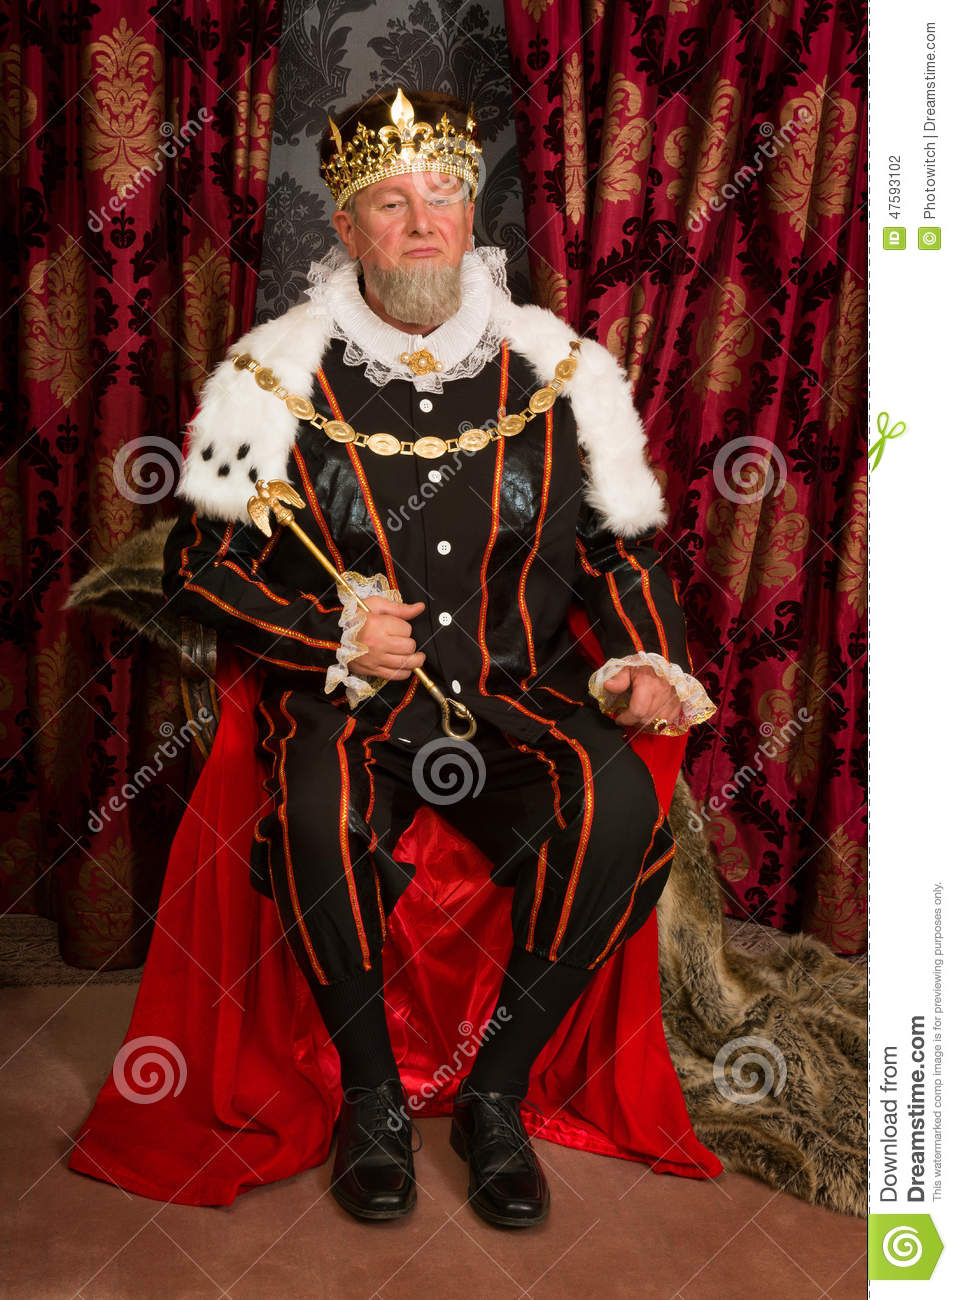 King in tudor costume sitting on his throne holding his scepter.